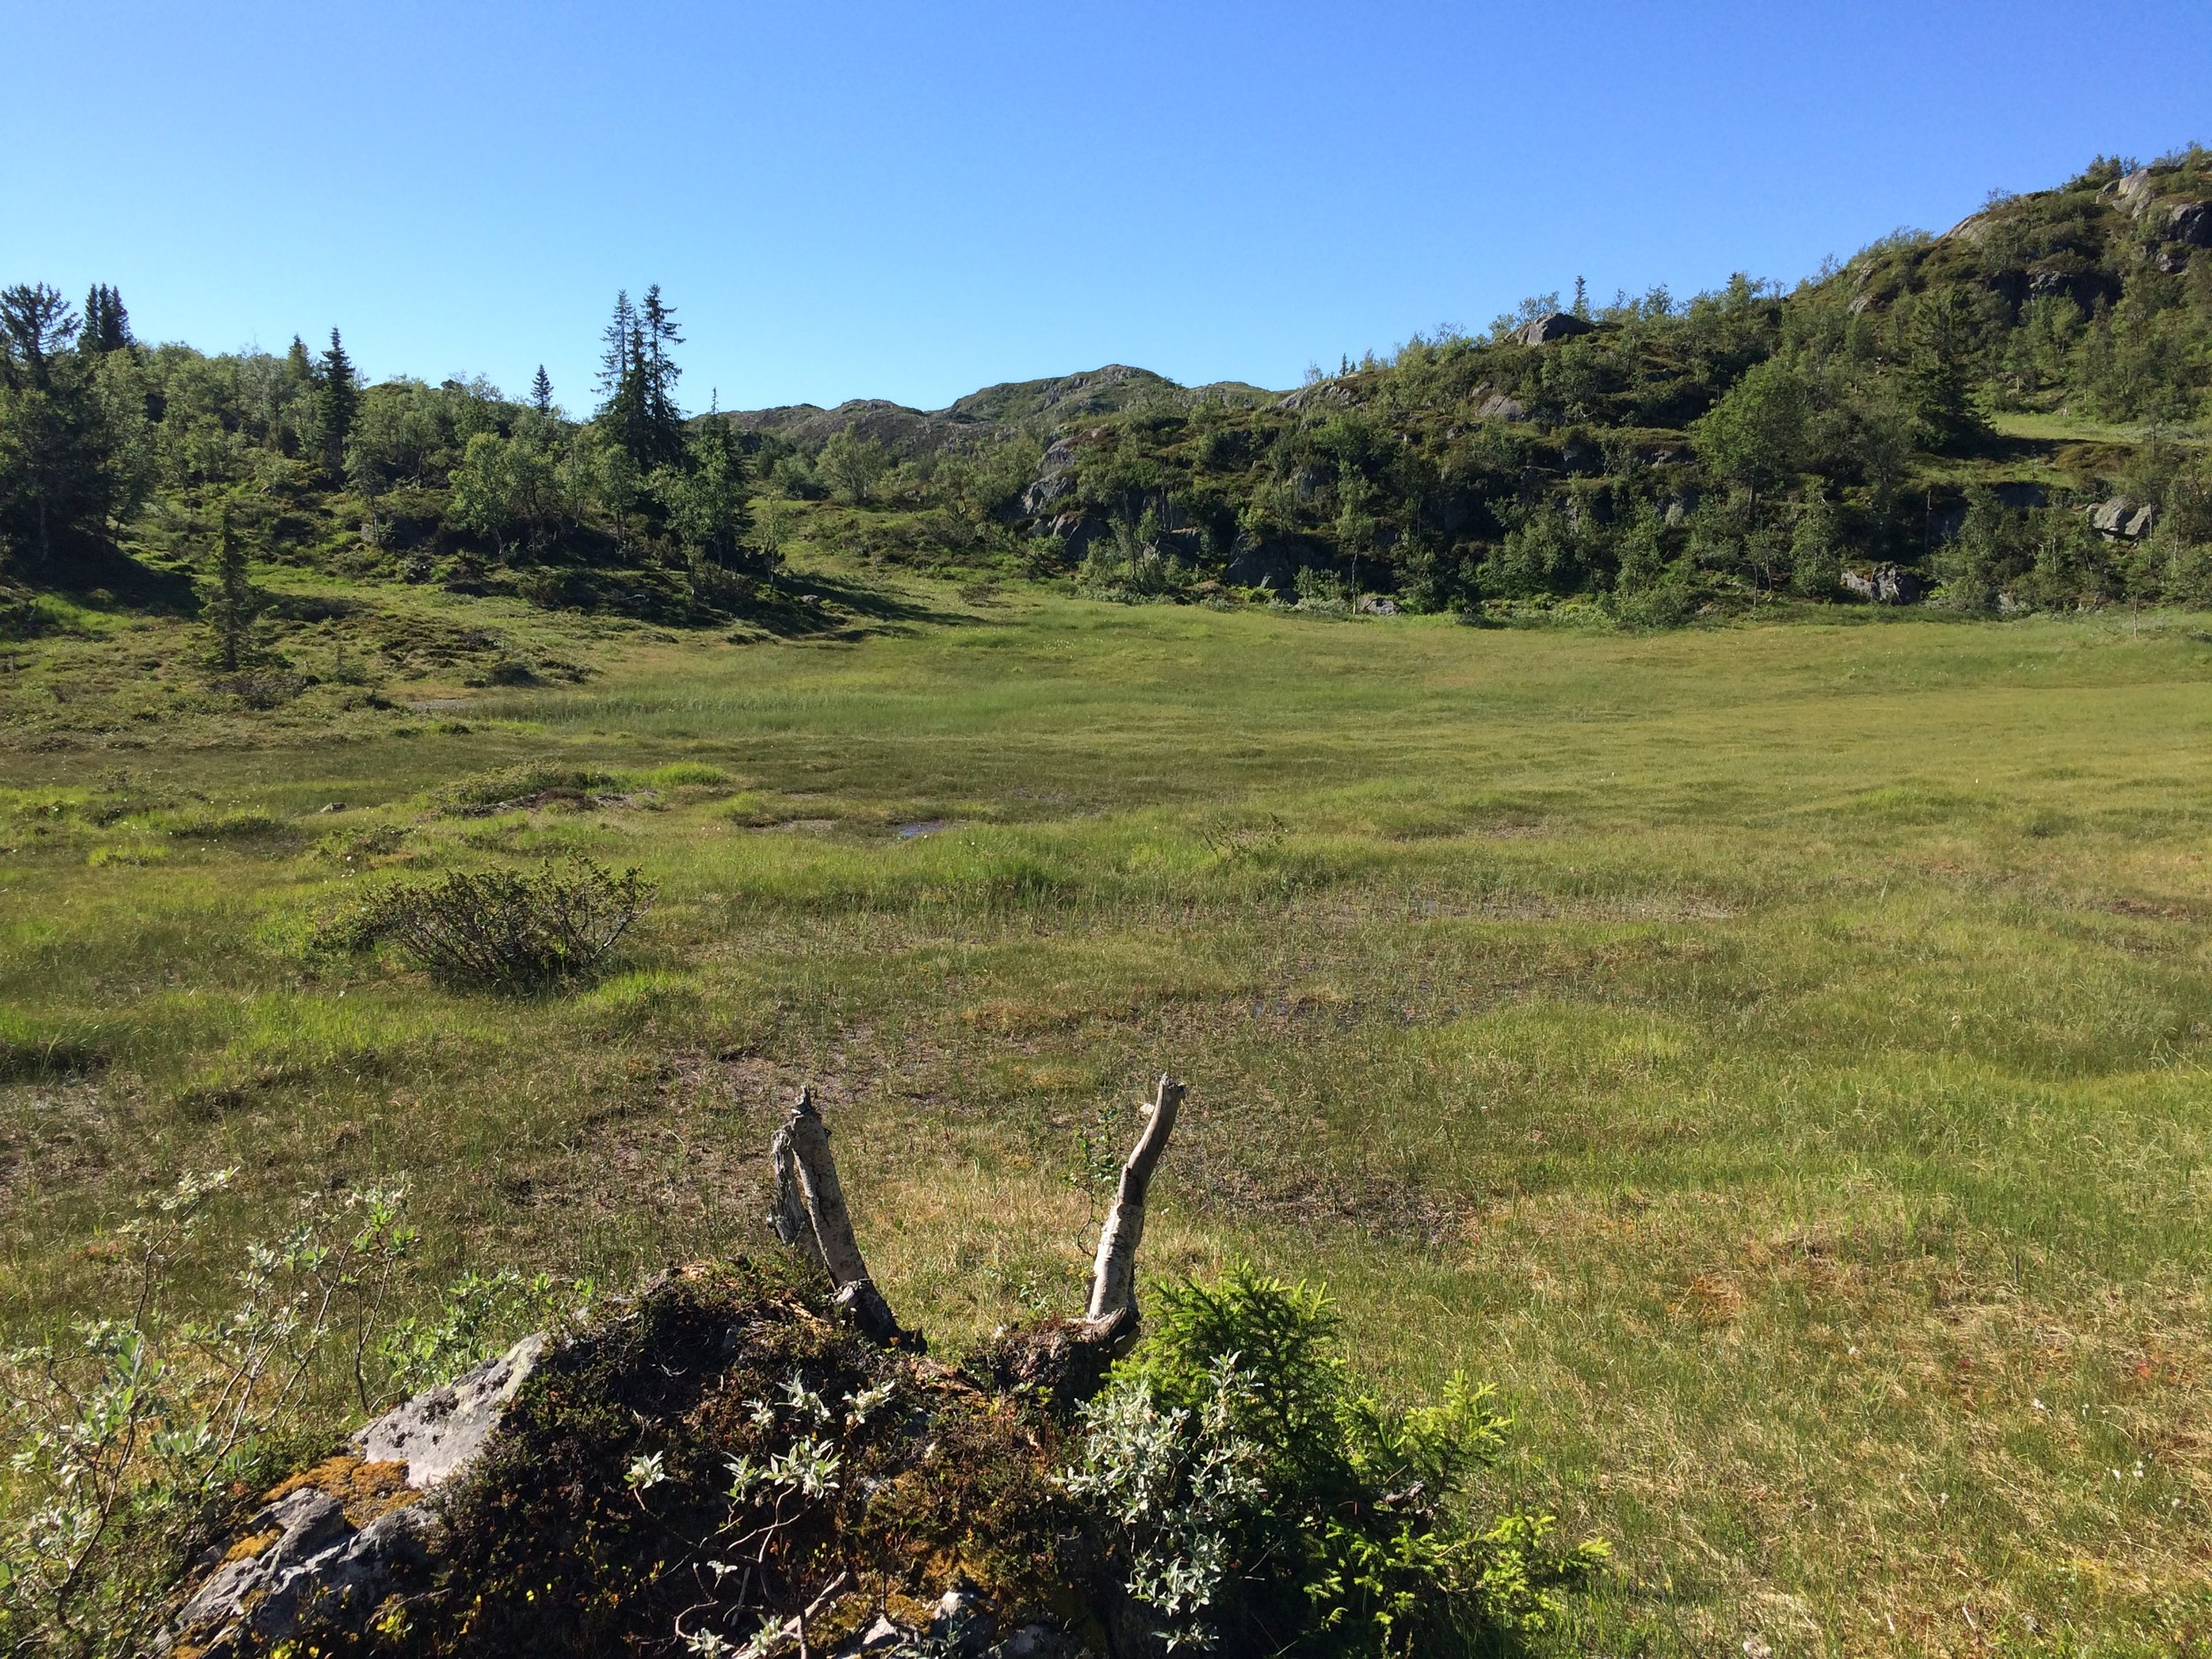 Alpine meadow on the hike.